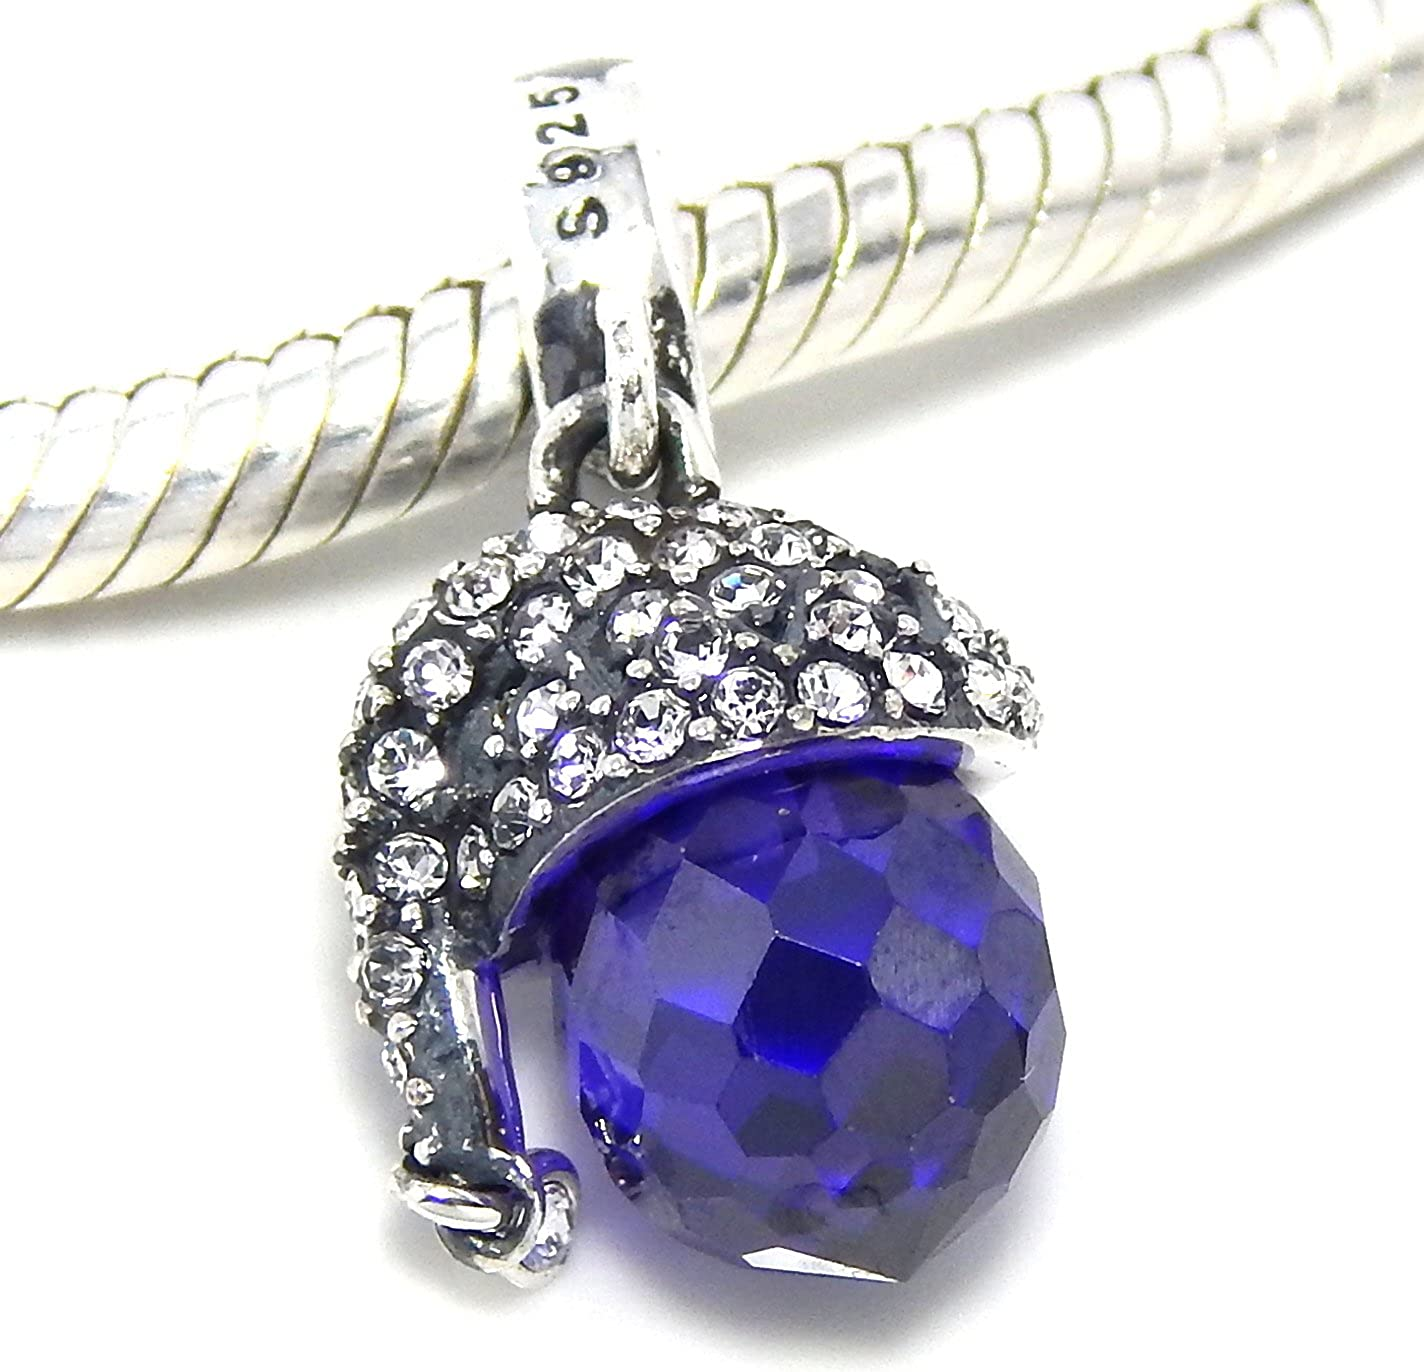 Solid 925 Sterling Silver Dangling Large Purple Crystal Wearing Clear Crystal Hat Charm Bead for European Snake Chain Bracelets